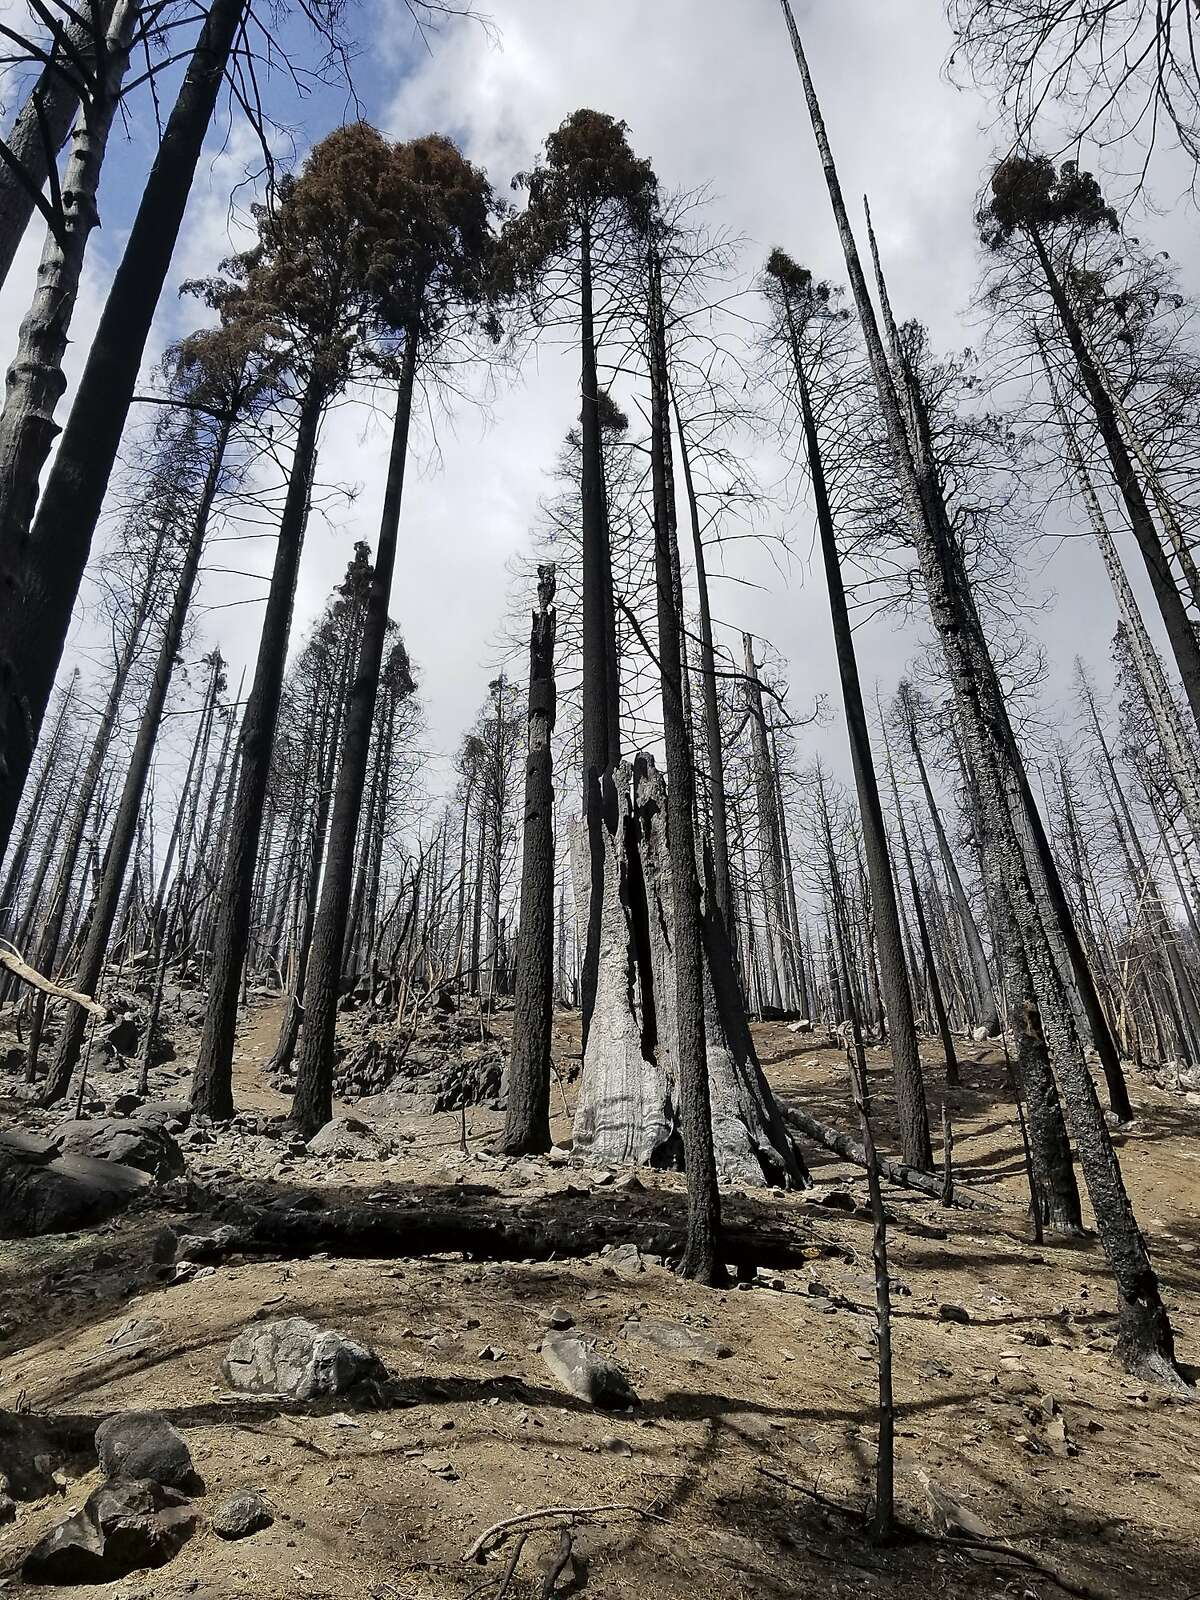 Last year's Castle Fire took a toll on sequoias in the Board Camp Grove in Sequoia National Park, as seen in April.